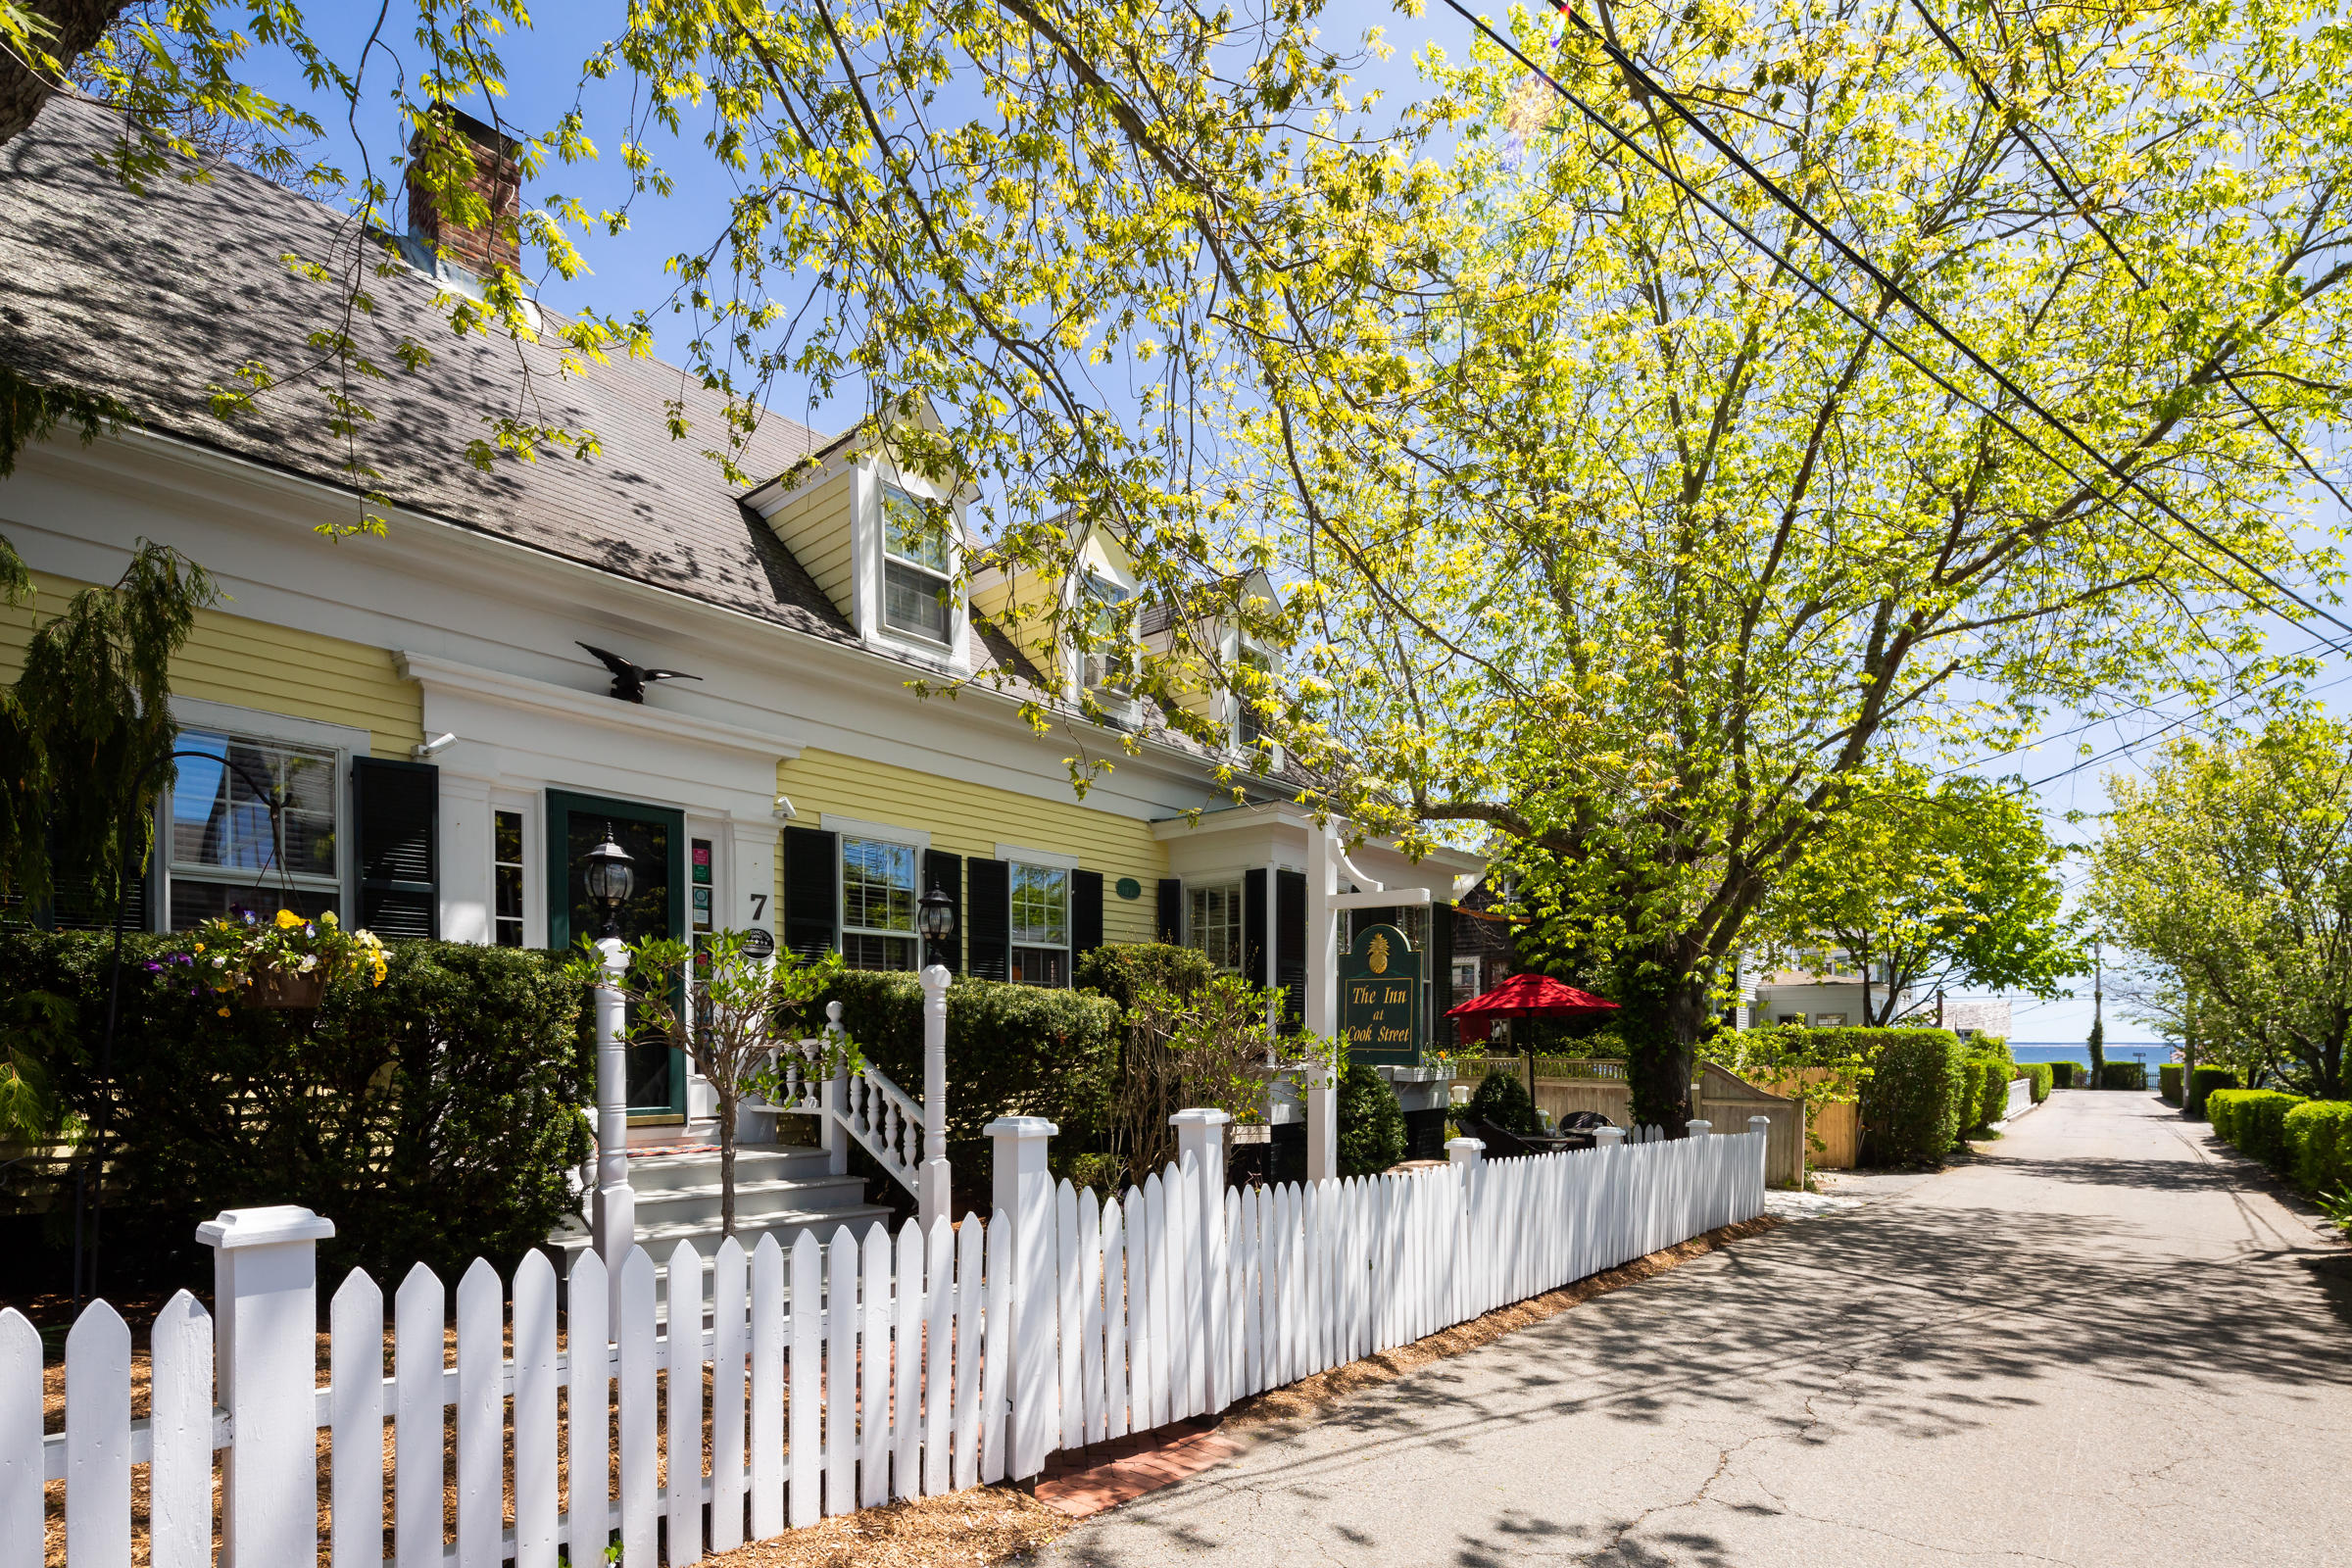 7 Cook Street, Provincetown MA, 02657 details